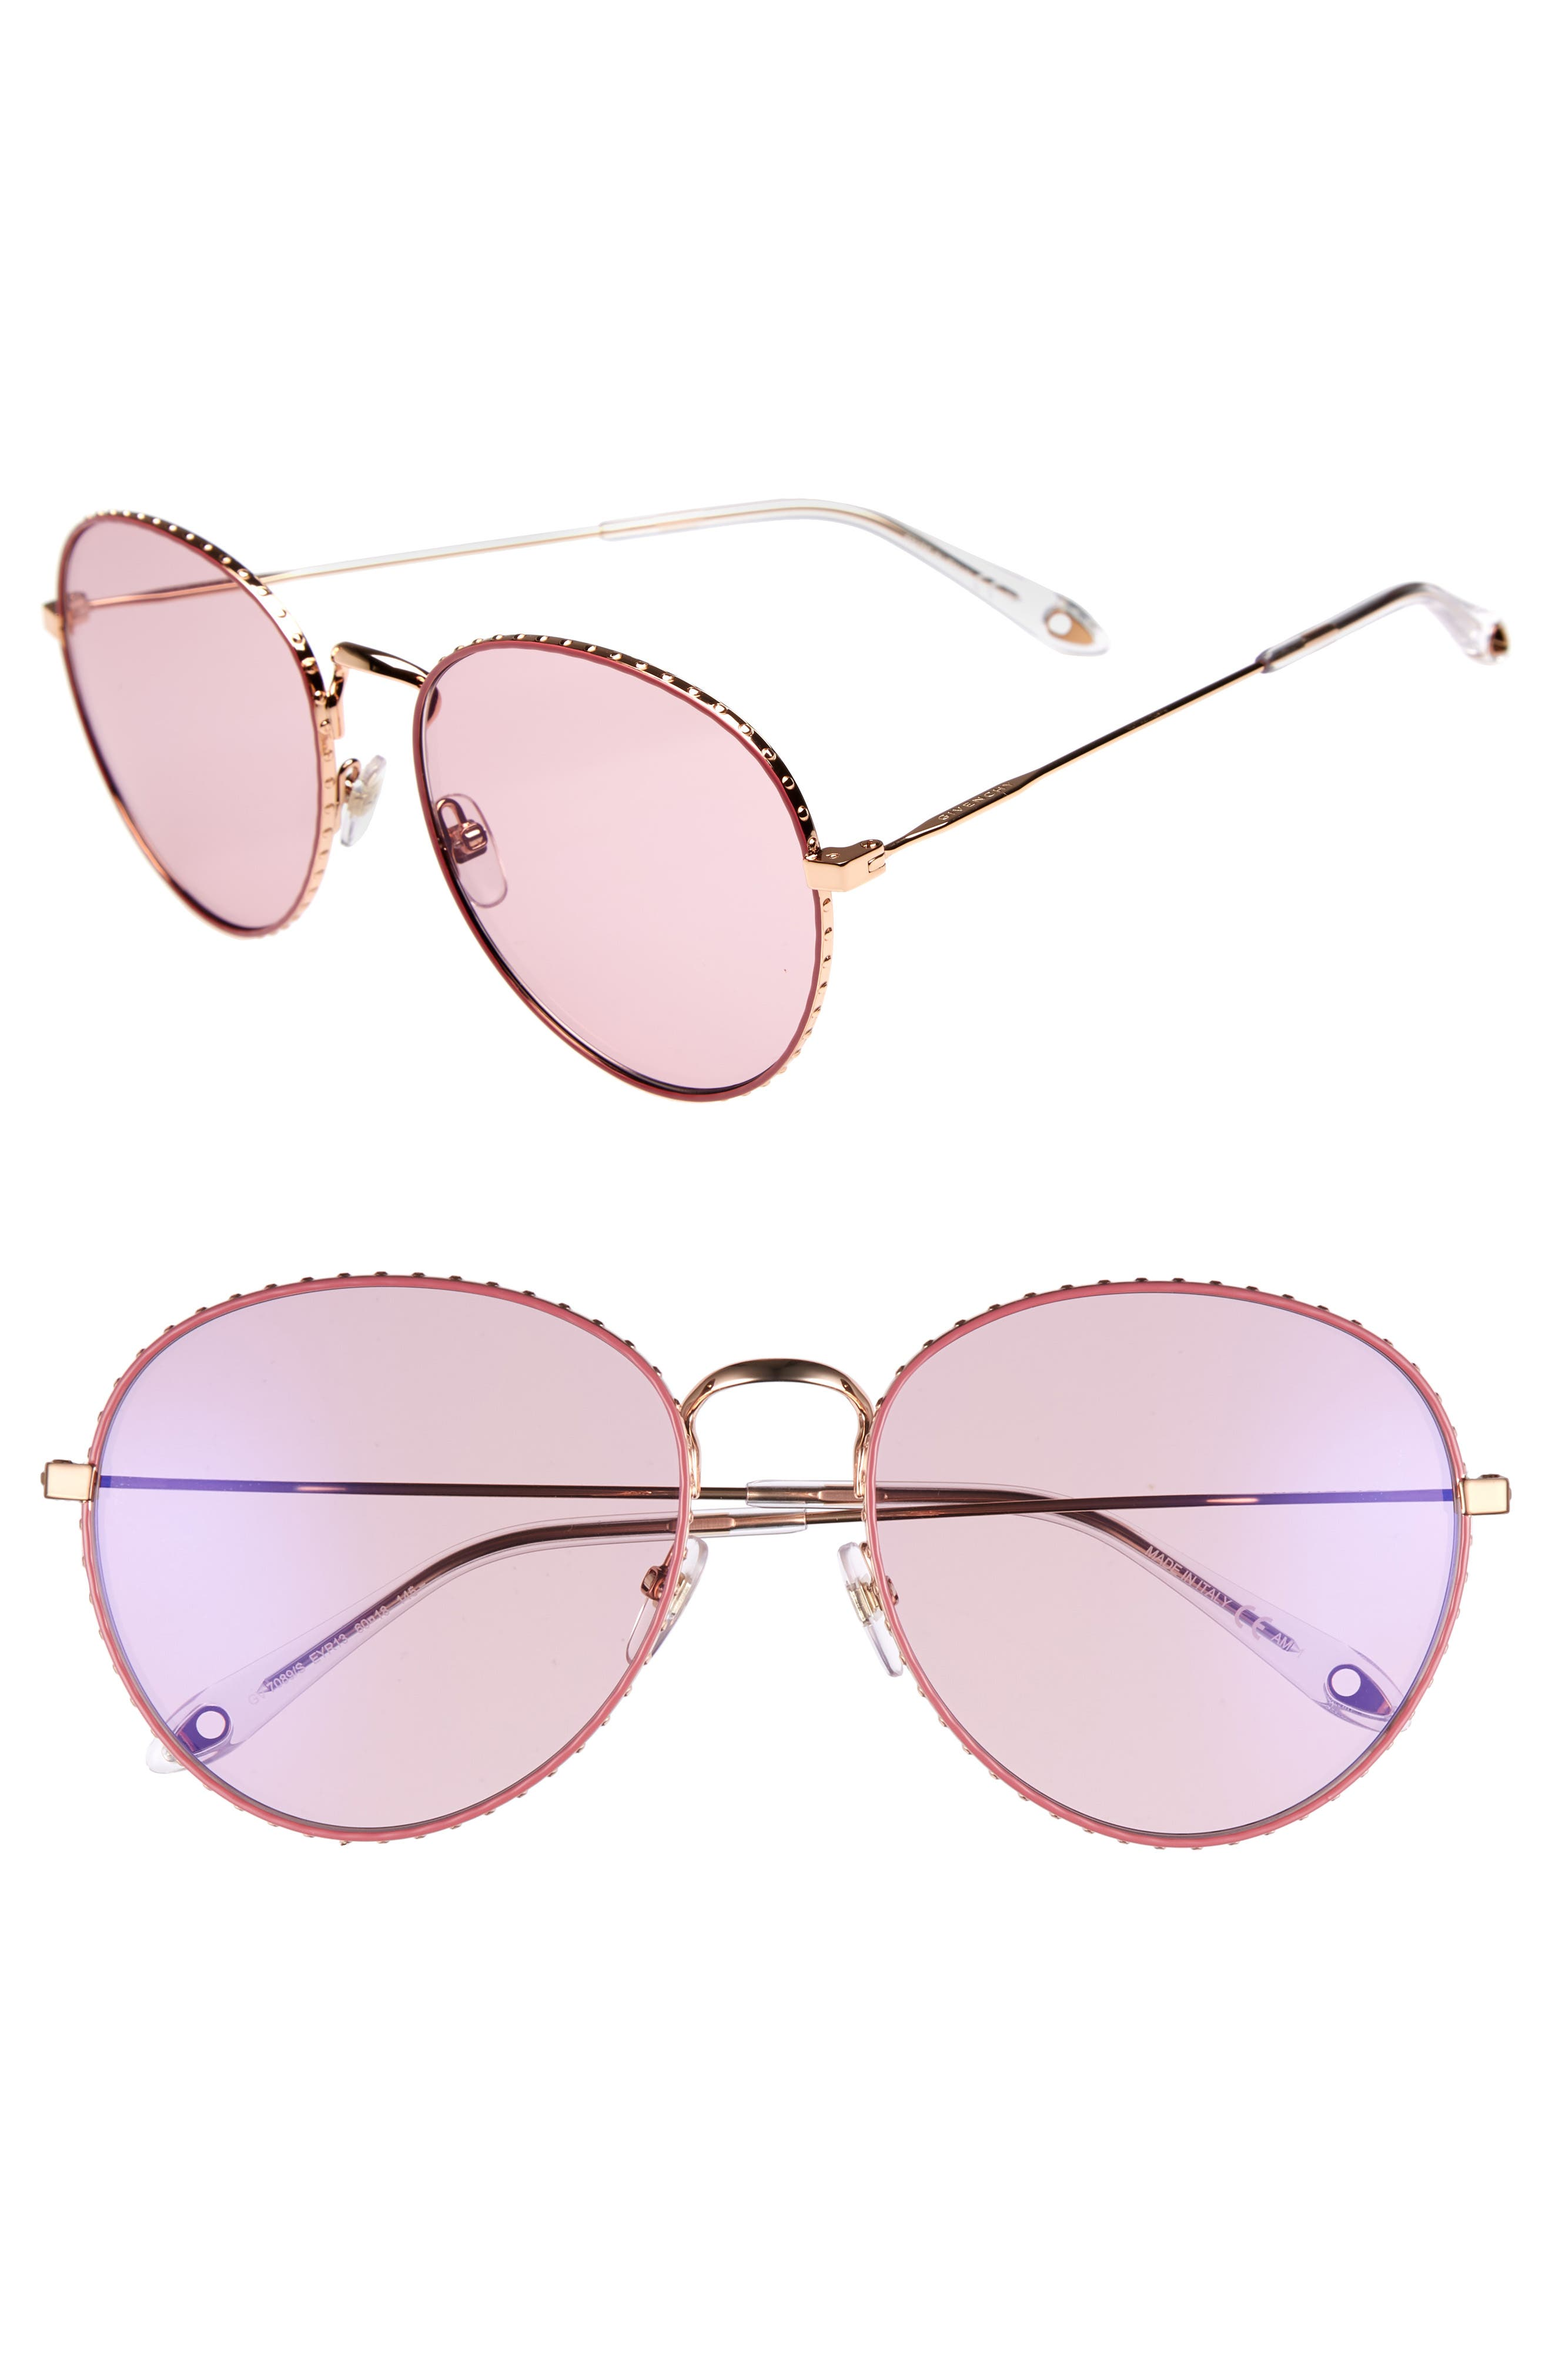 60mm Round Metal Sunglasses,                         Main,                         color, 710